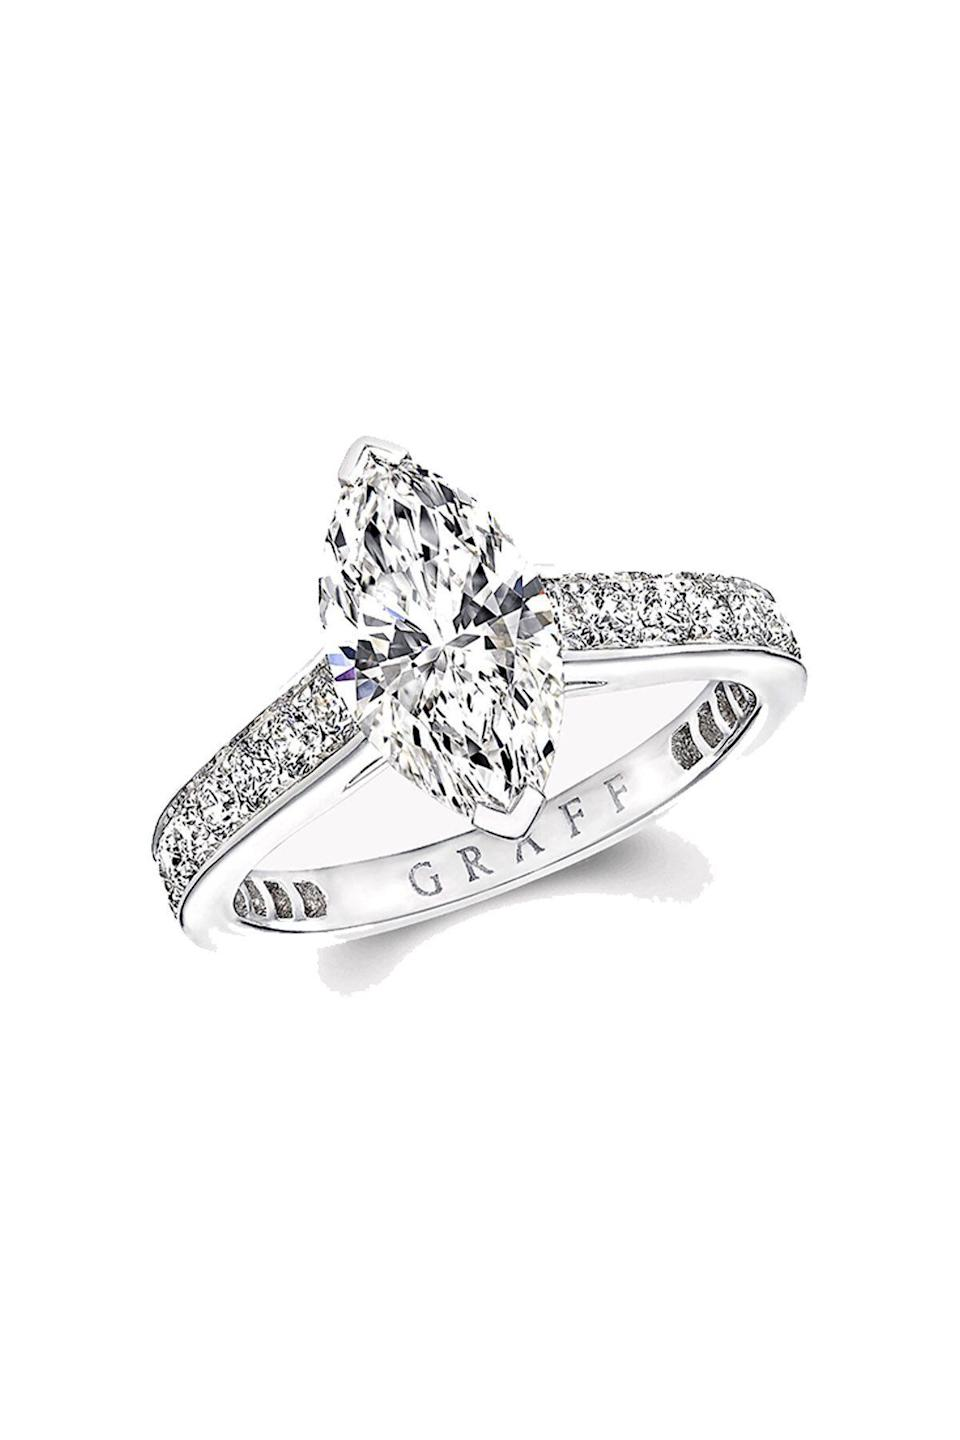 """<p><strong>Graff</strong></p><p>graff.com</p><p><strong>$21500.00</strong></p><p><a href=""""https://us.graff.com/us-en/engagement-bridal/engagement/engagement-rings/flame/flame-marquise-cut-diamond-engagement-ring/MPV01ALL_MPV01ALL.html"""" rel=""""nofollow noopener"""" target=""""_blank"""" data-ylk=""""slk:Shop Now"""" class=""""link rapid-noclick-resp"""">Shop Now</a></p><p>A bride on the hunt for a show-stopping oh-so-sparkly engagement ring will be sure to find it at Graff. </p>"""